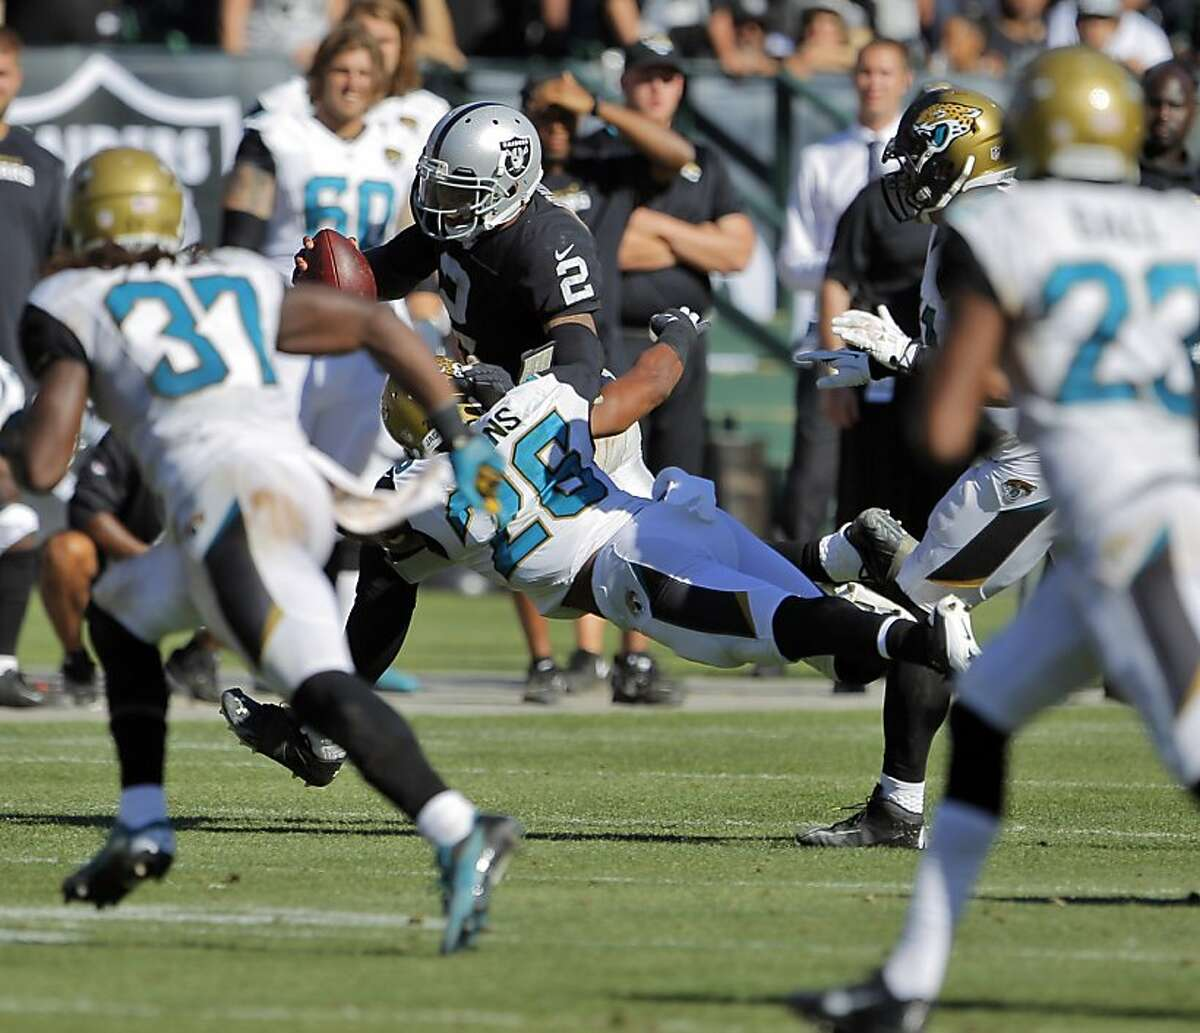 Terrelle Pryor runs the ball in the fourth quarter, and for the game had 50 yards on 9 carries. The Oakland Raiders played the Jacksonville Jaguars at O.co Coliseum in Oakland, Calif., on Sunday, September 15, 2013.